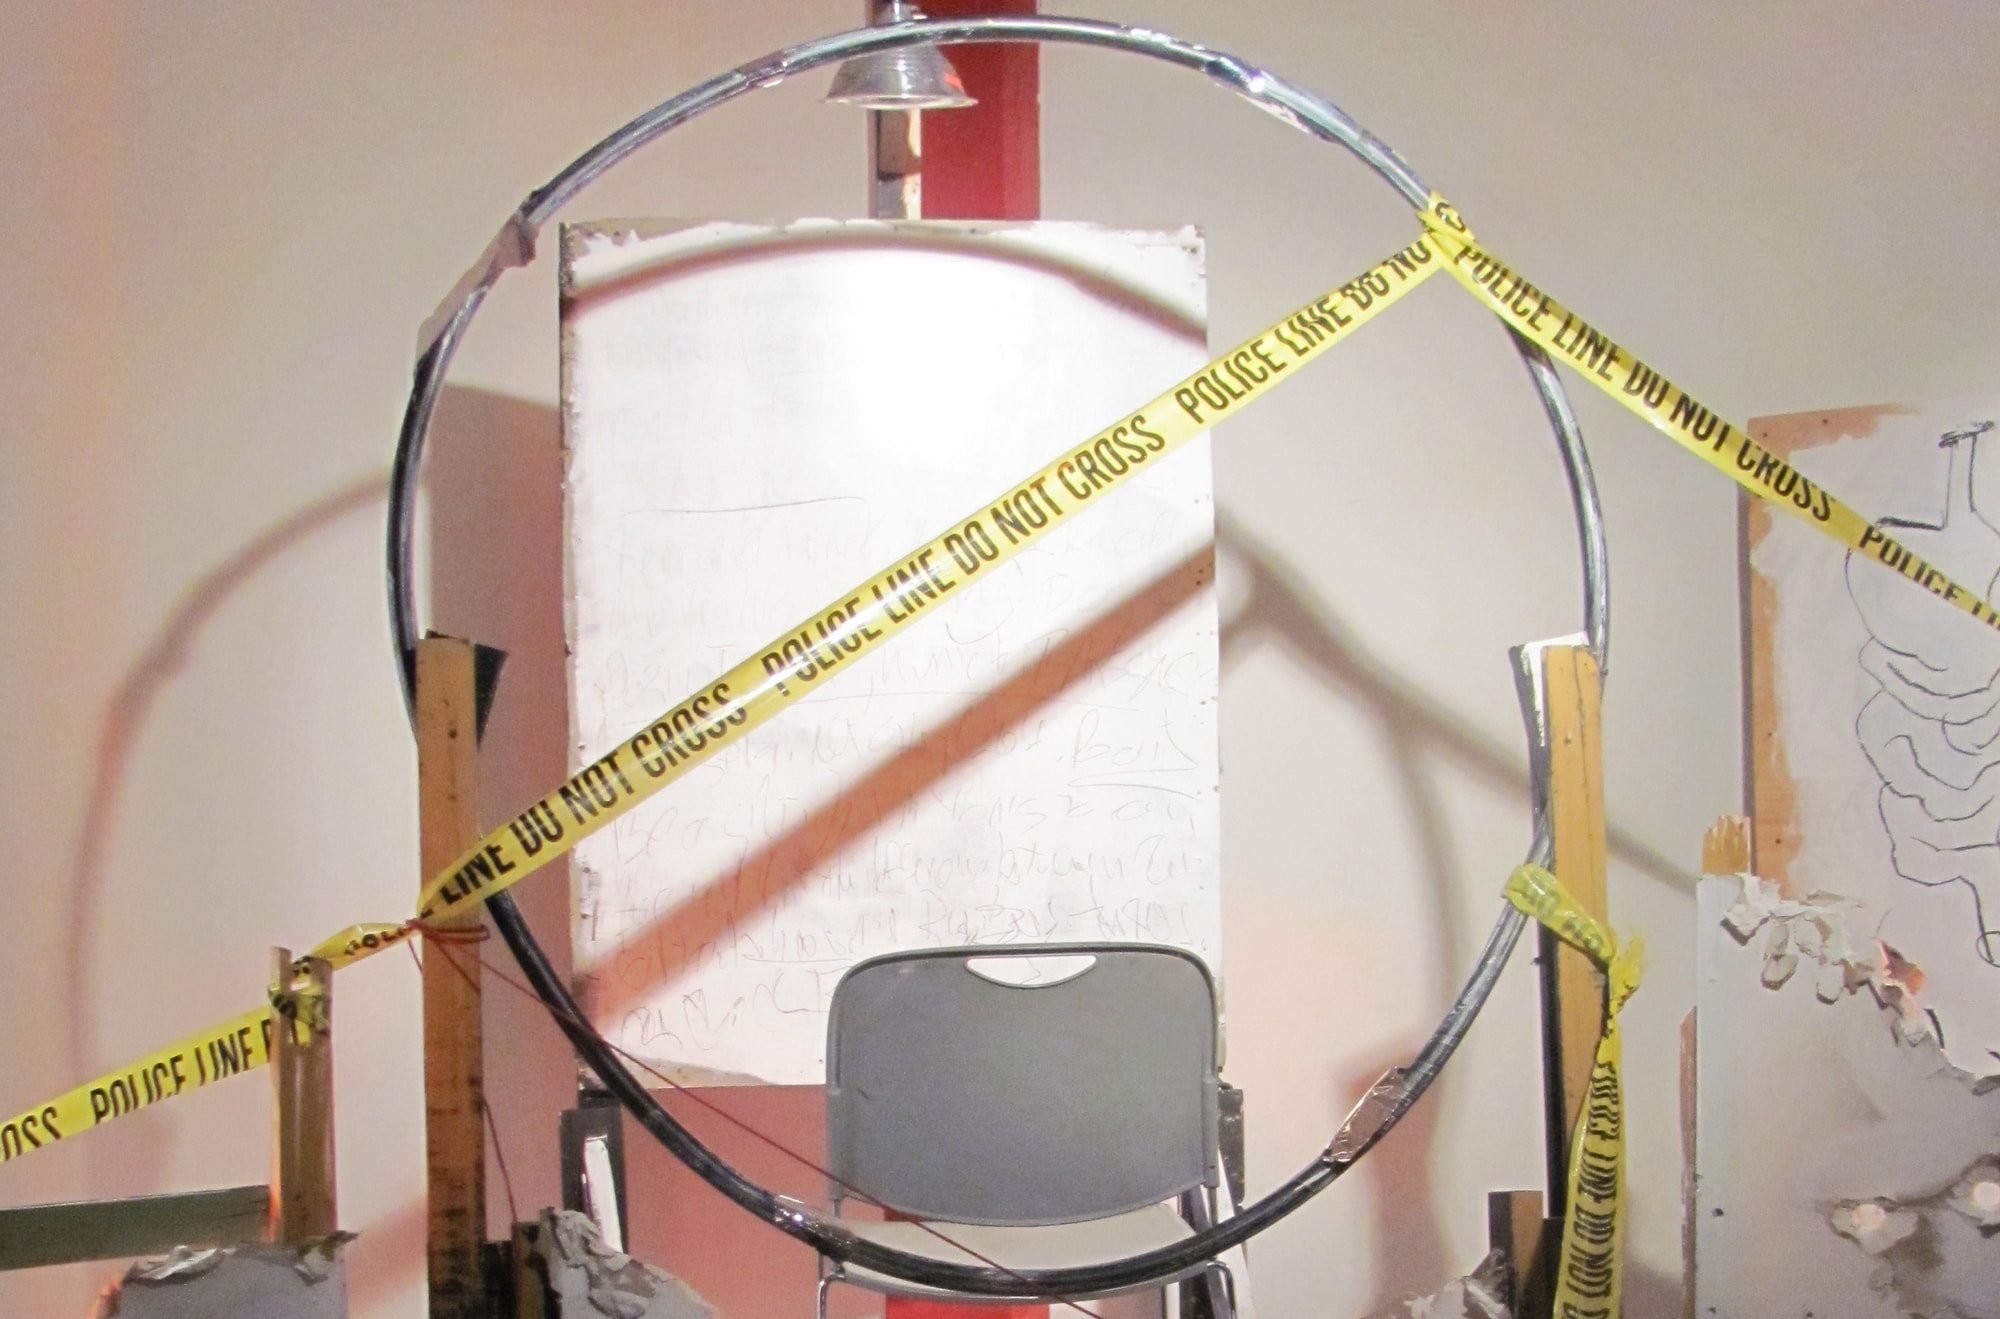 Image of a set with police tape crisscrossing the set